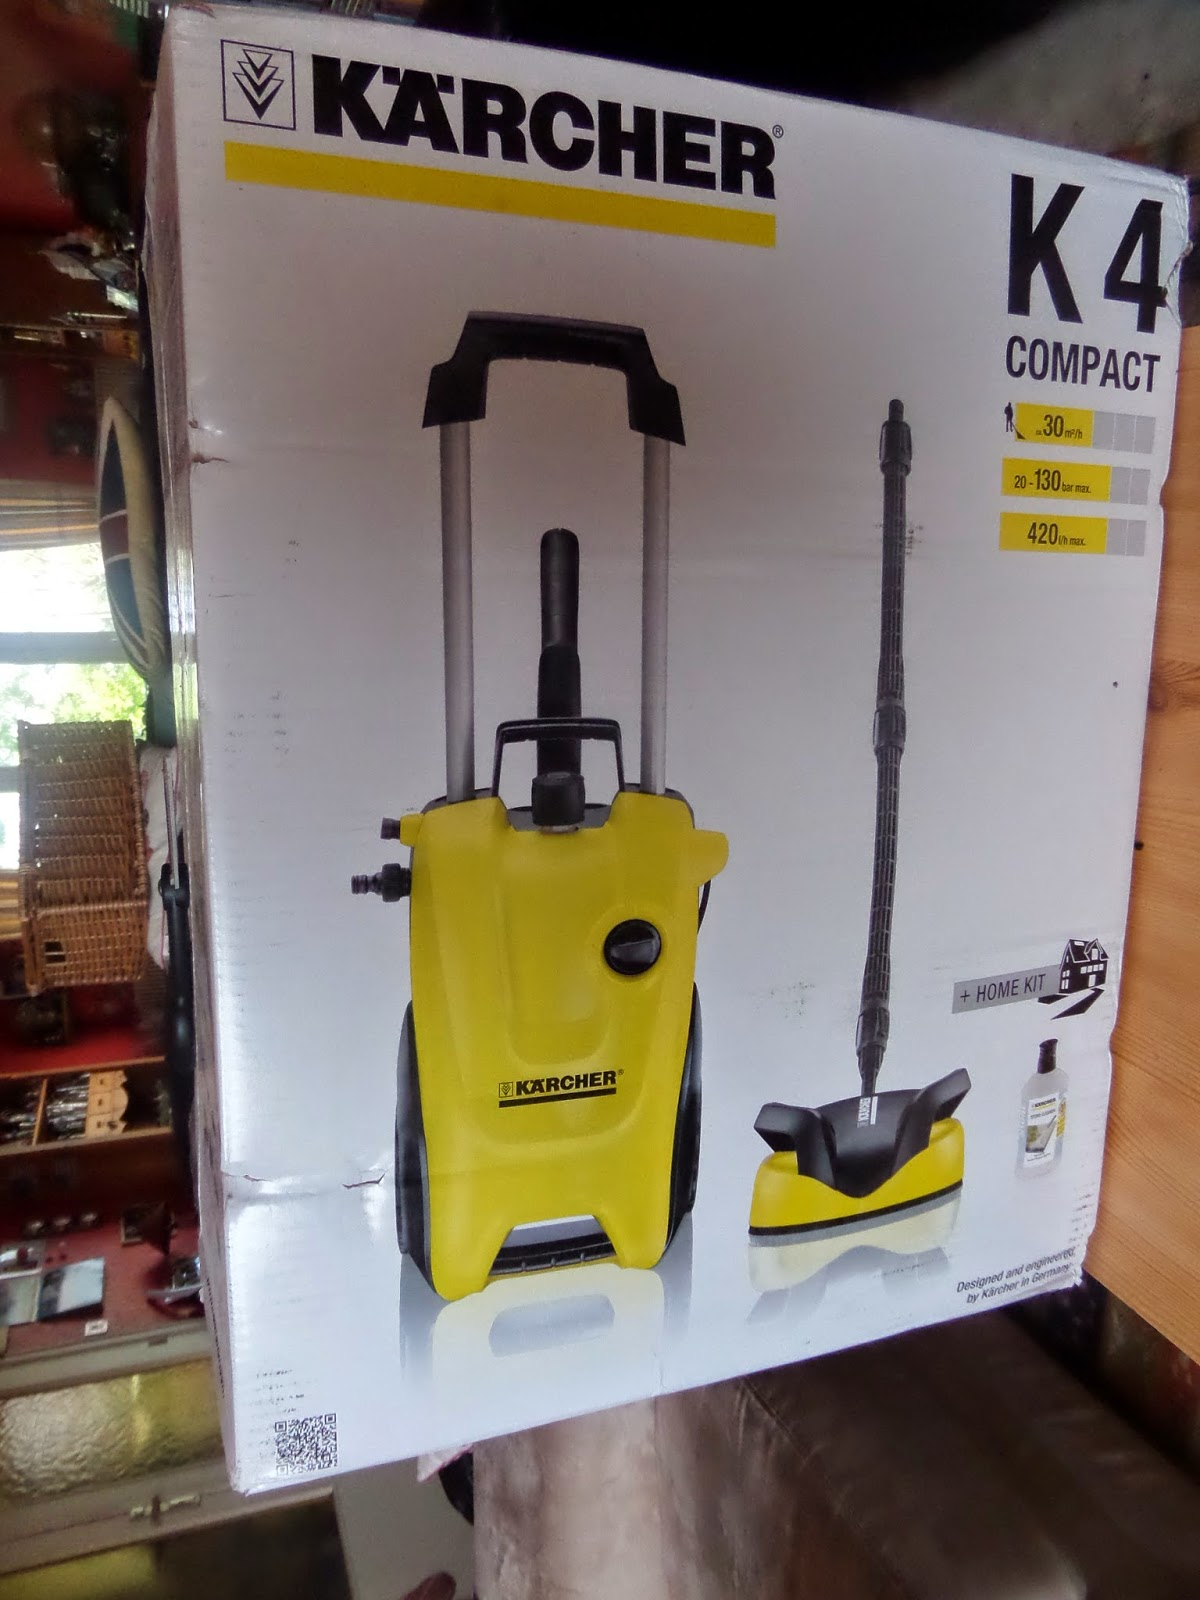 madhouse family reviews k rcher k4 compact pressure washer review. Black Bedroom Furniture Sets. Home Design Ideas